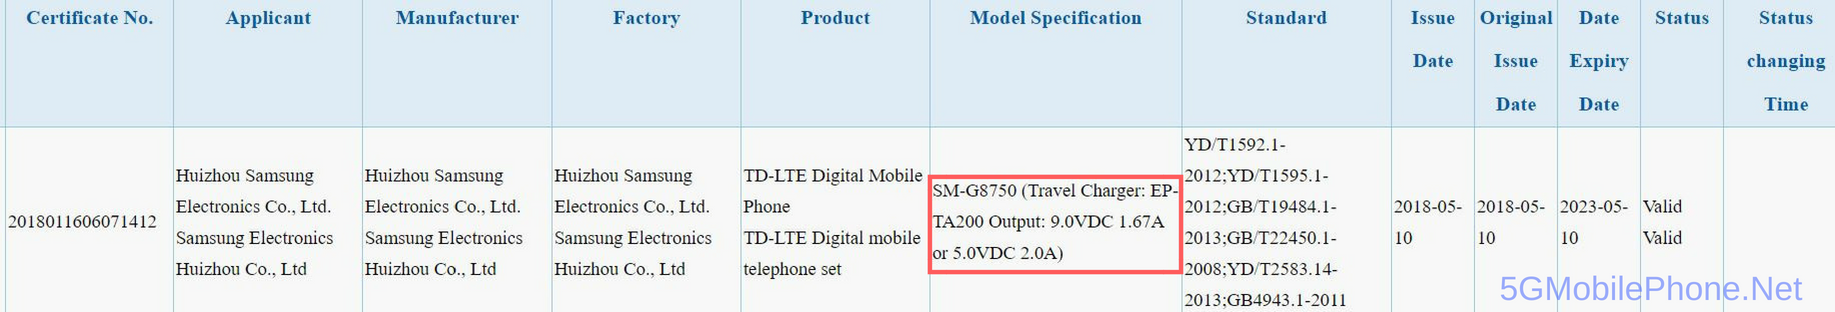 SM-G8750 Receive 3C Certification